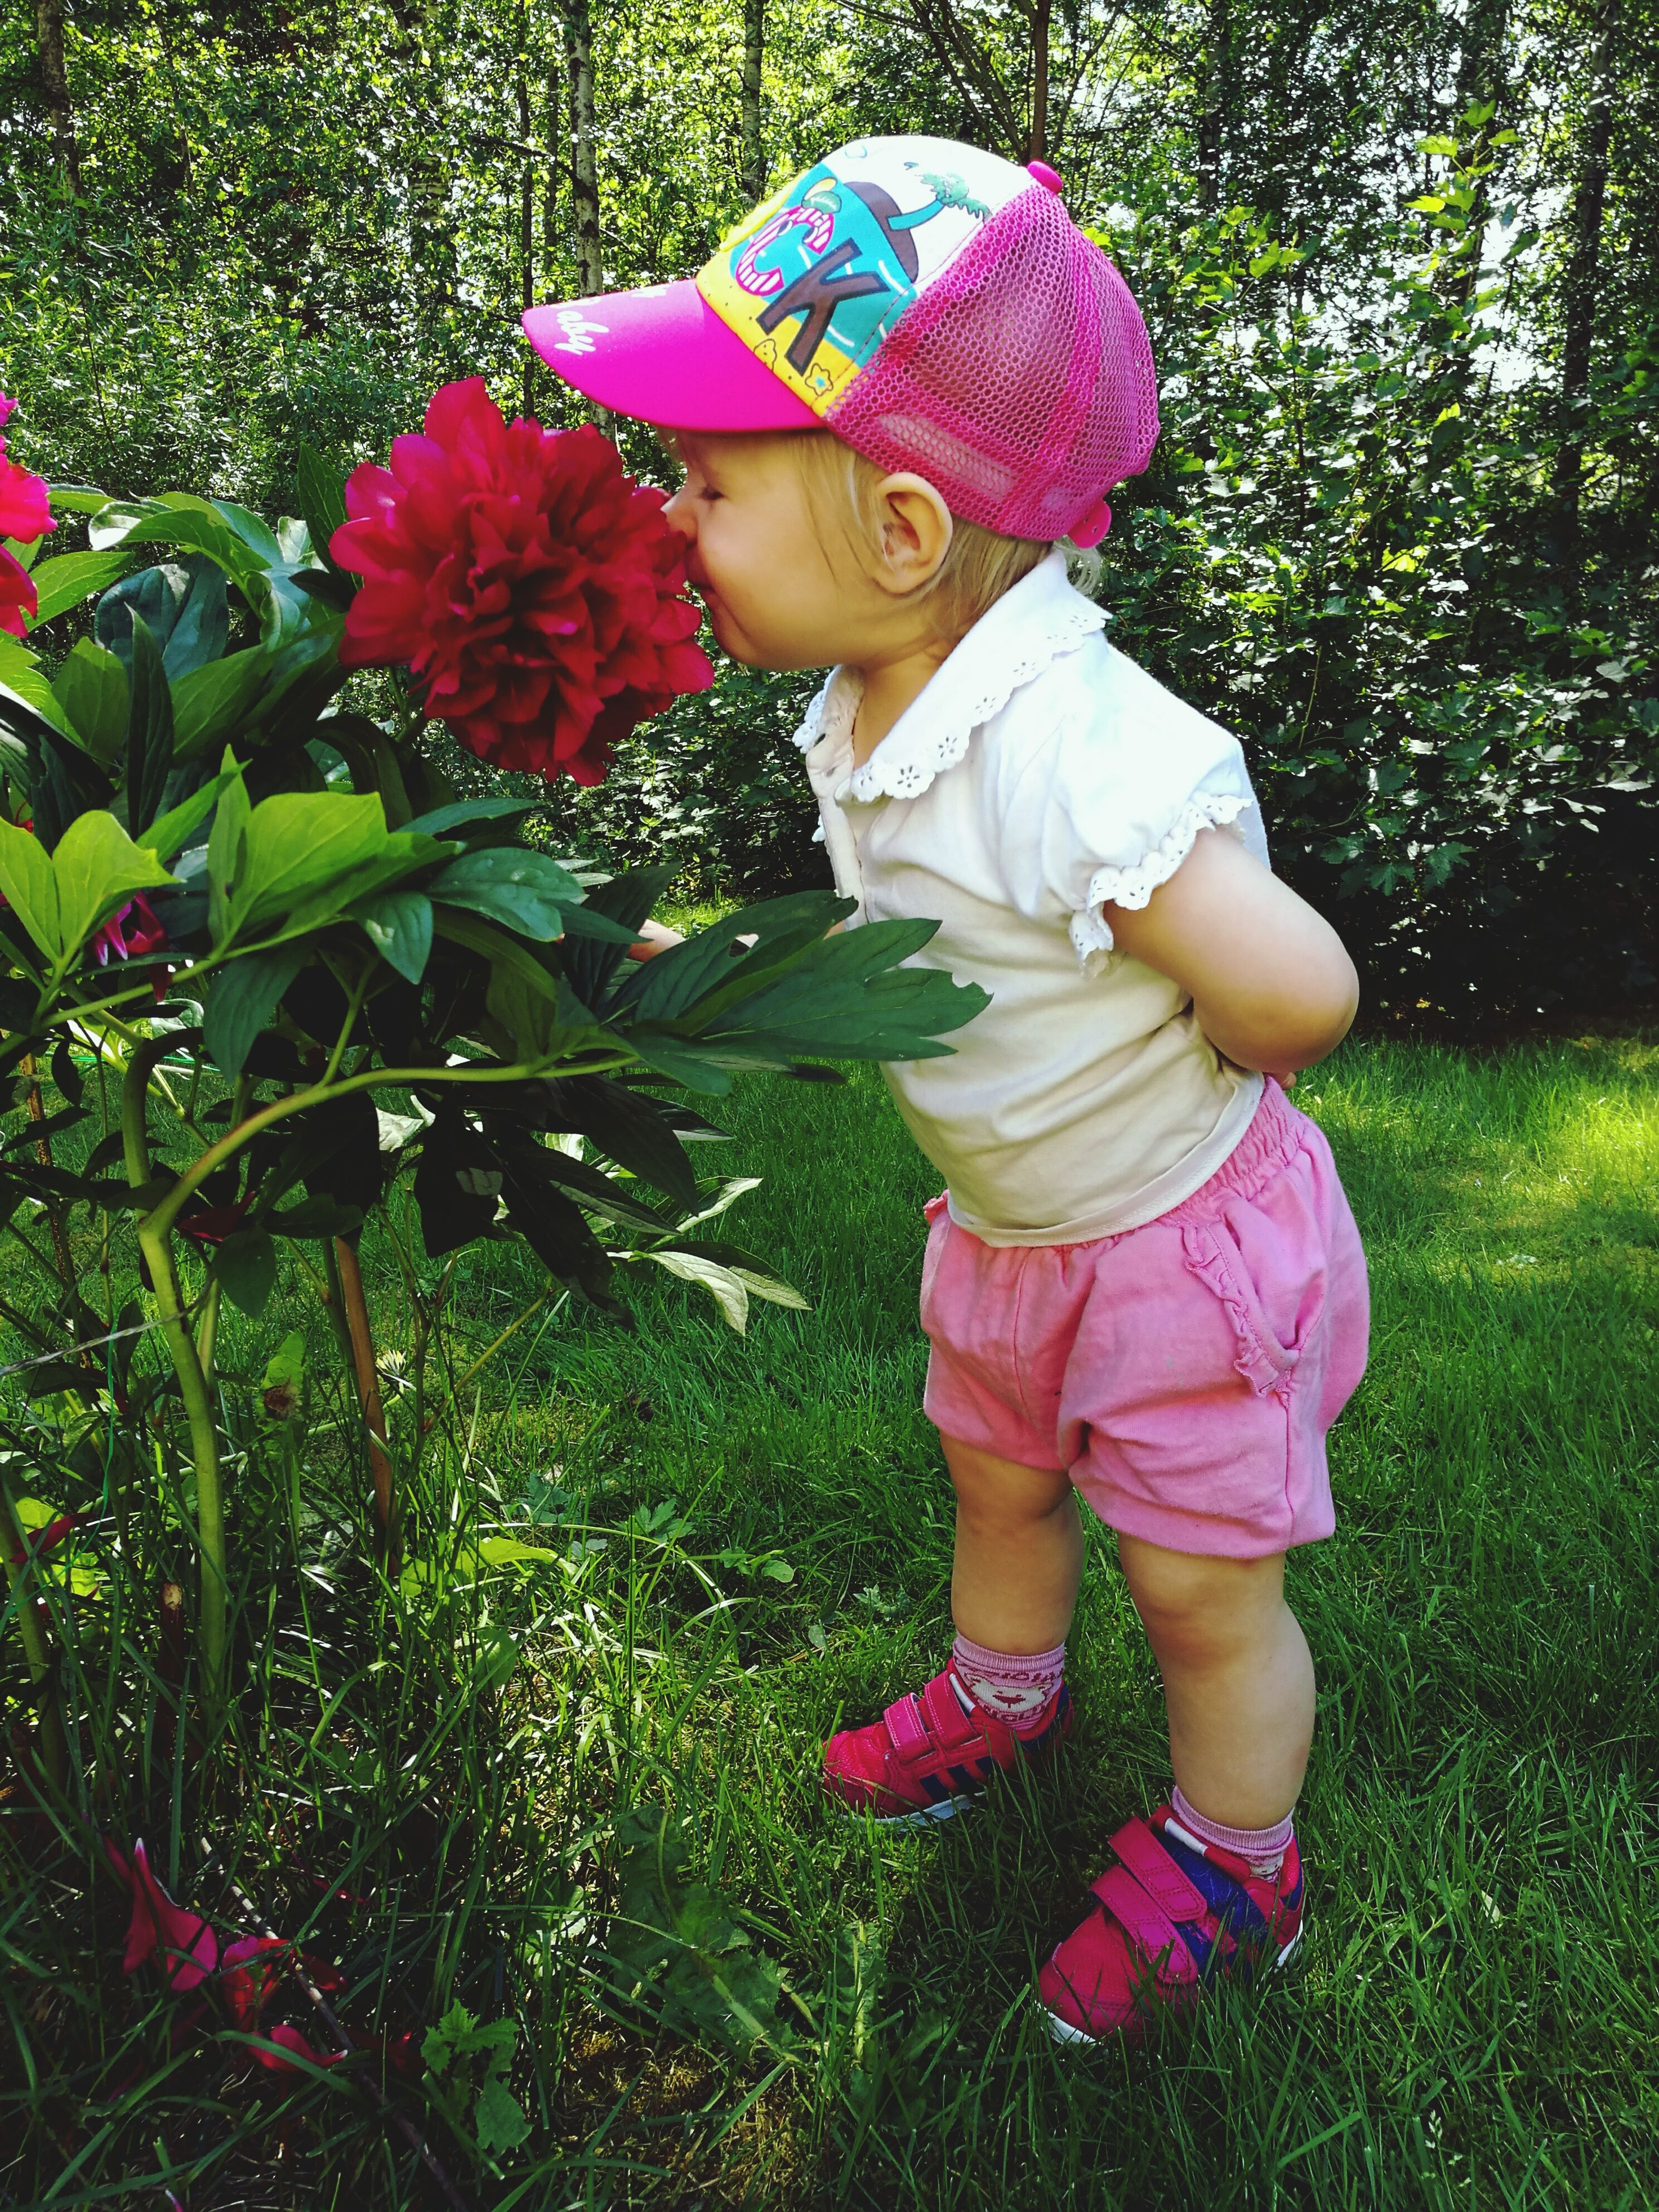 childhood, elementary age, girls, innocence, cute, casual clothing, person, flower, park - man made space, boys, leisure activity, lifestyles, full length, growth, grass, fragility, plant, green color